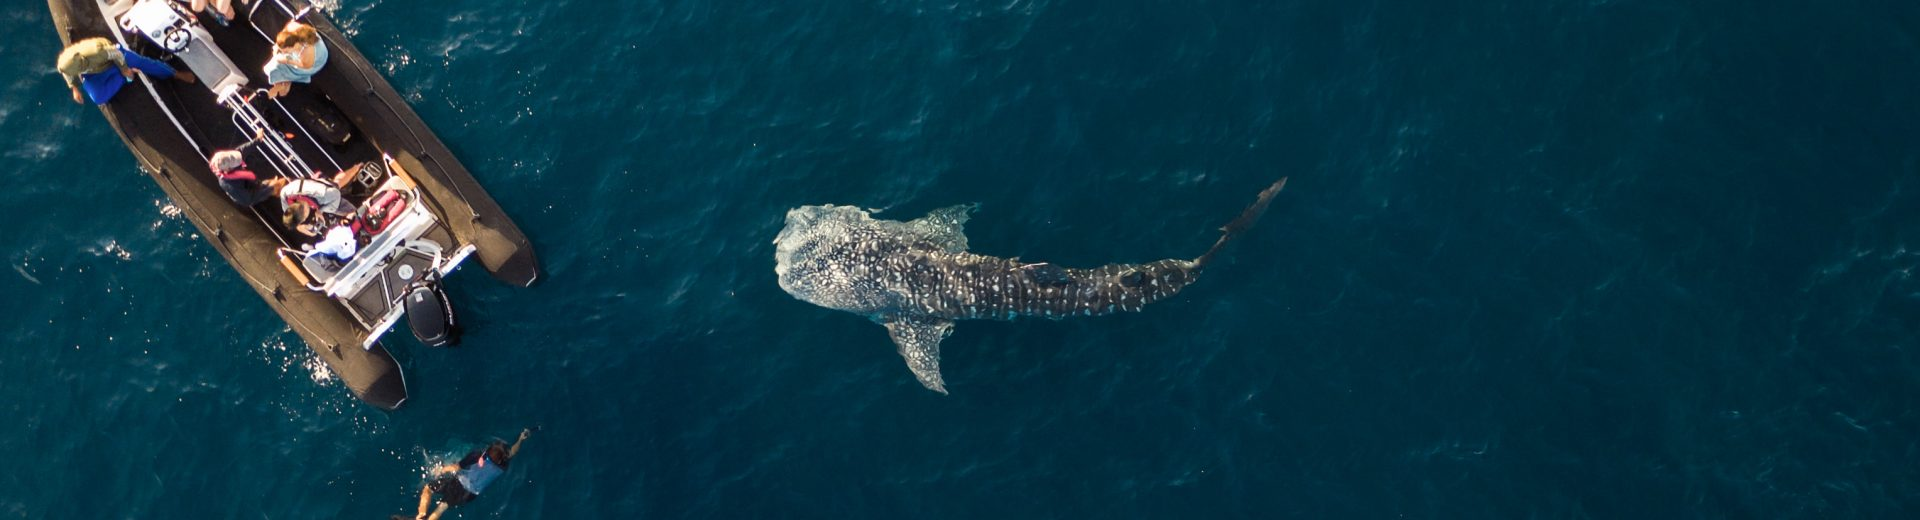 Encounters with whale sharks in Indonesia.